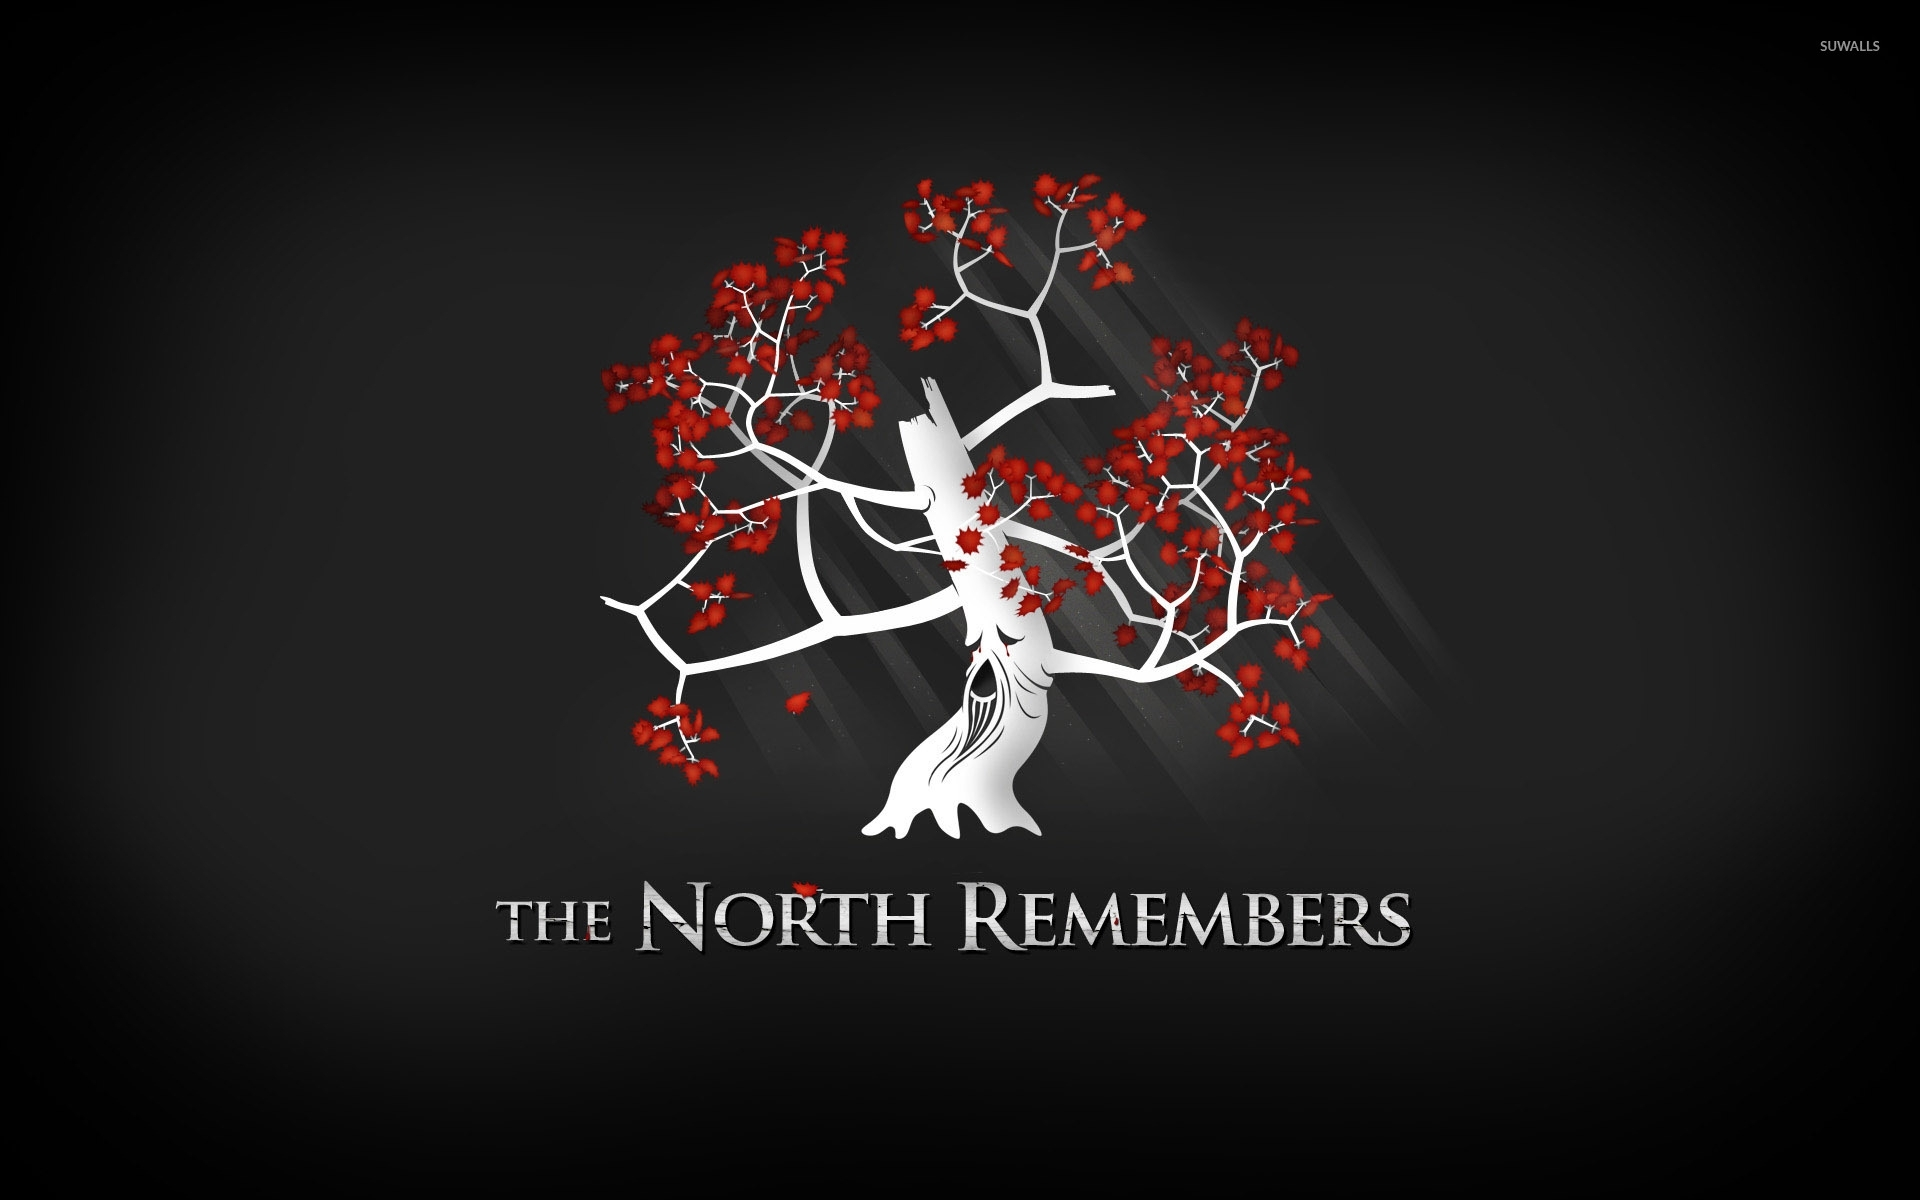 the north remembers wallpaper - tv show wallpapers - #28628